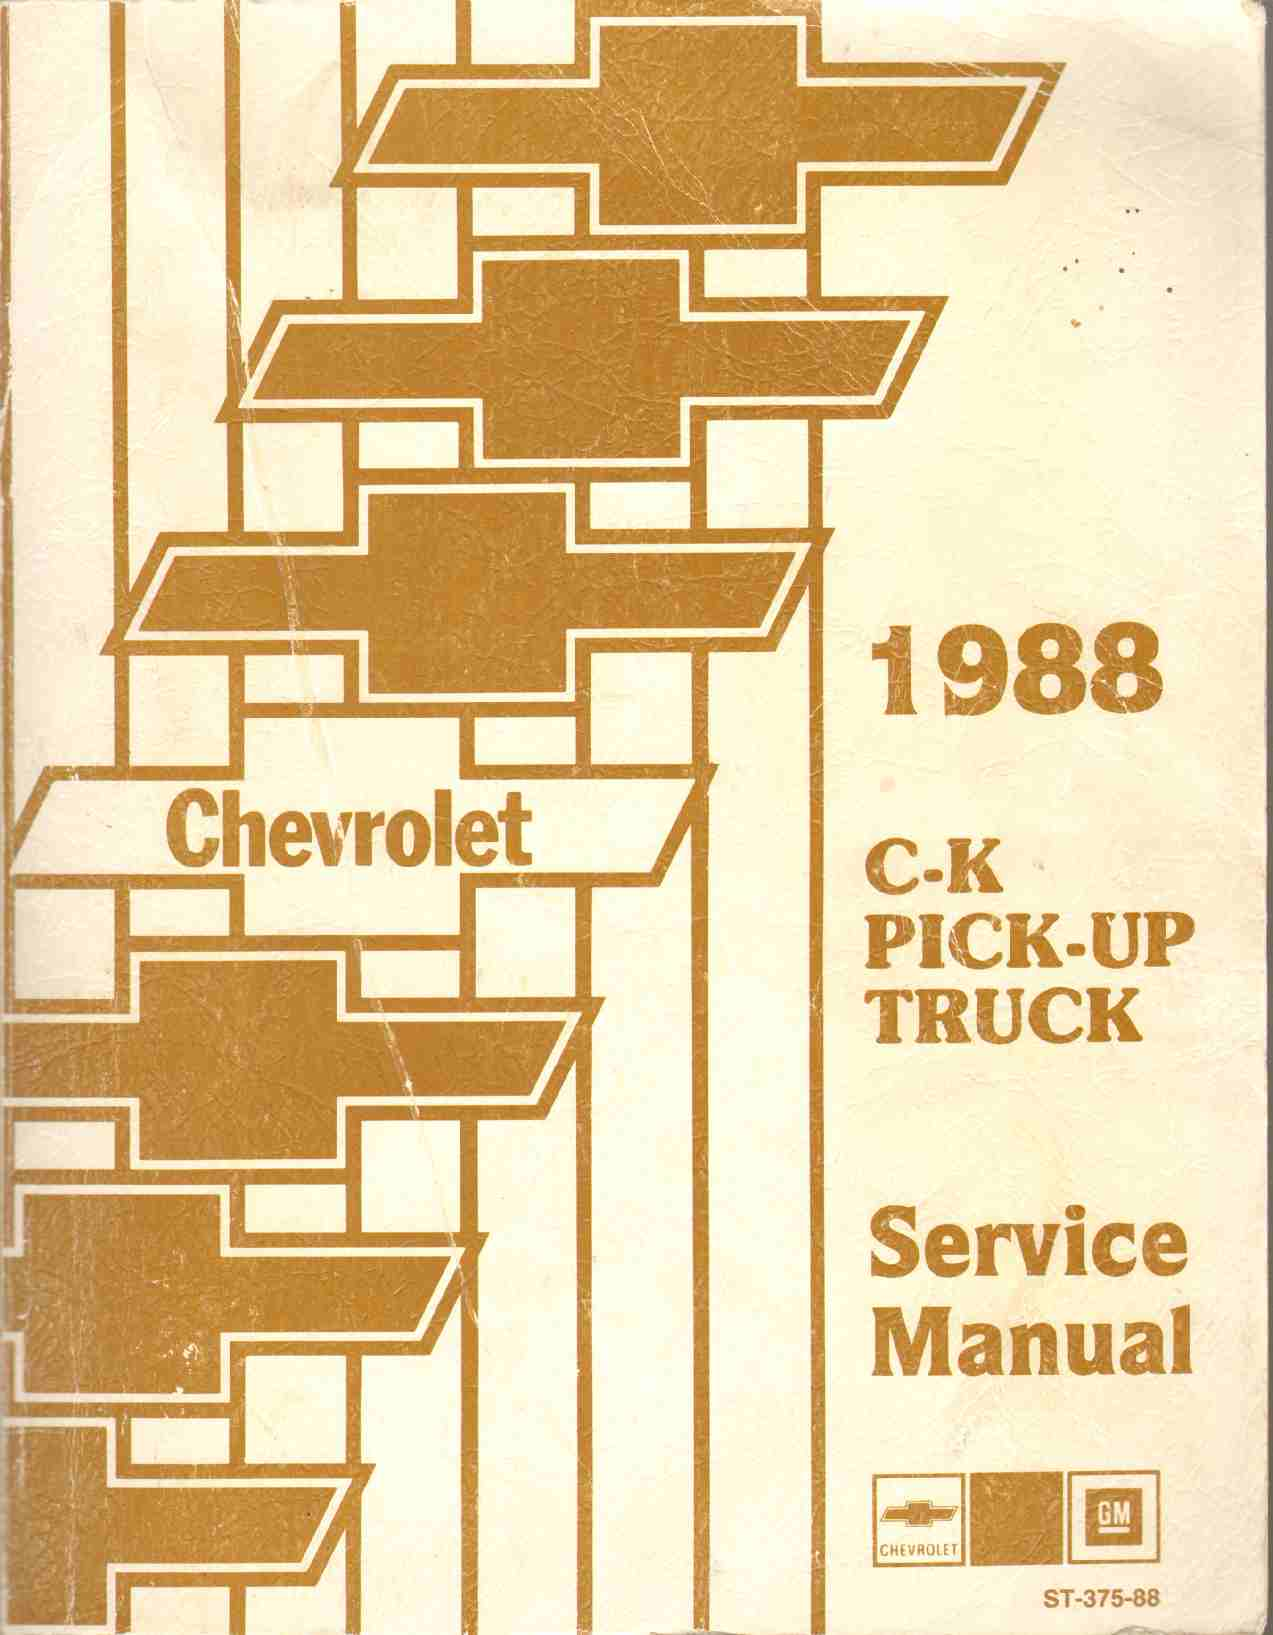 Image for 1988 CHEVROLET C-K PICK-UP TRUCK SERVICE MANUAL